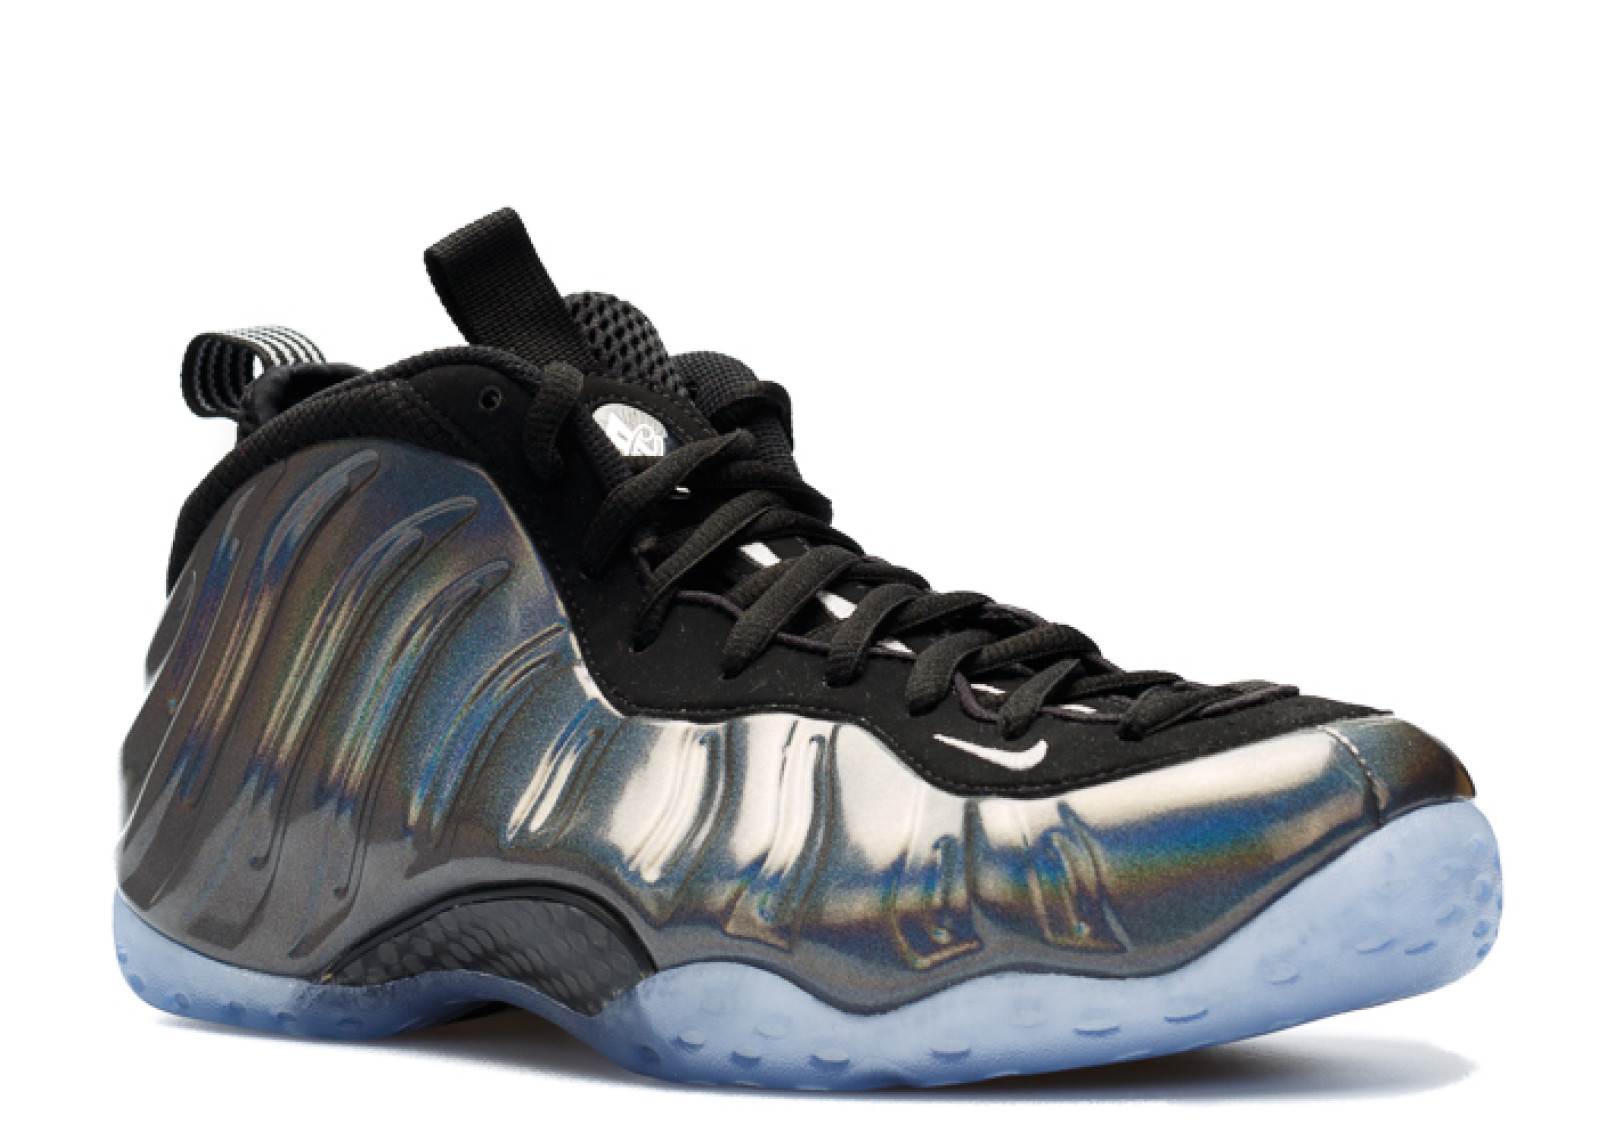 Nike Air Foamposite One Black Anthracite 2020 ...